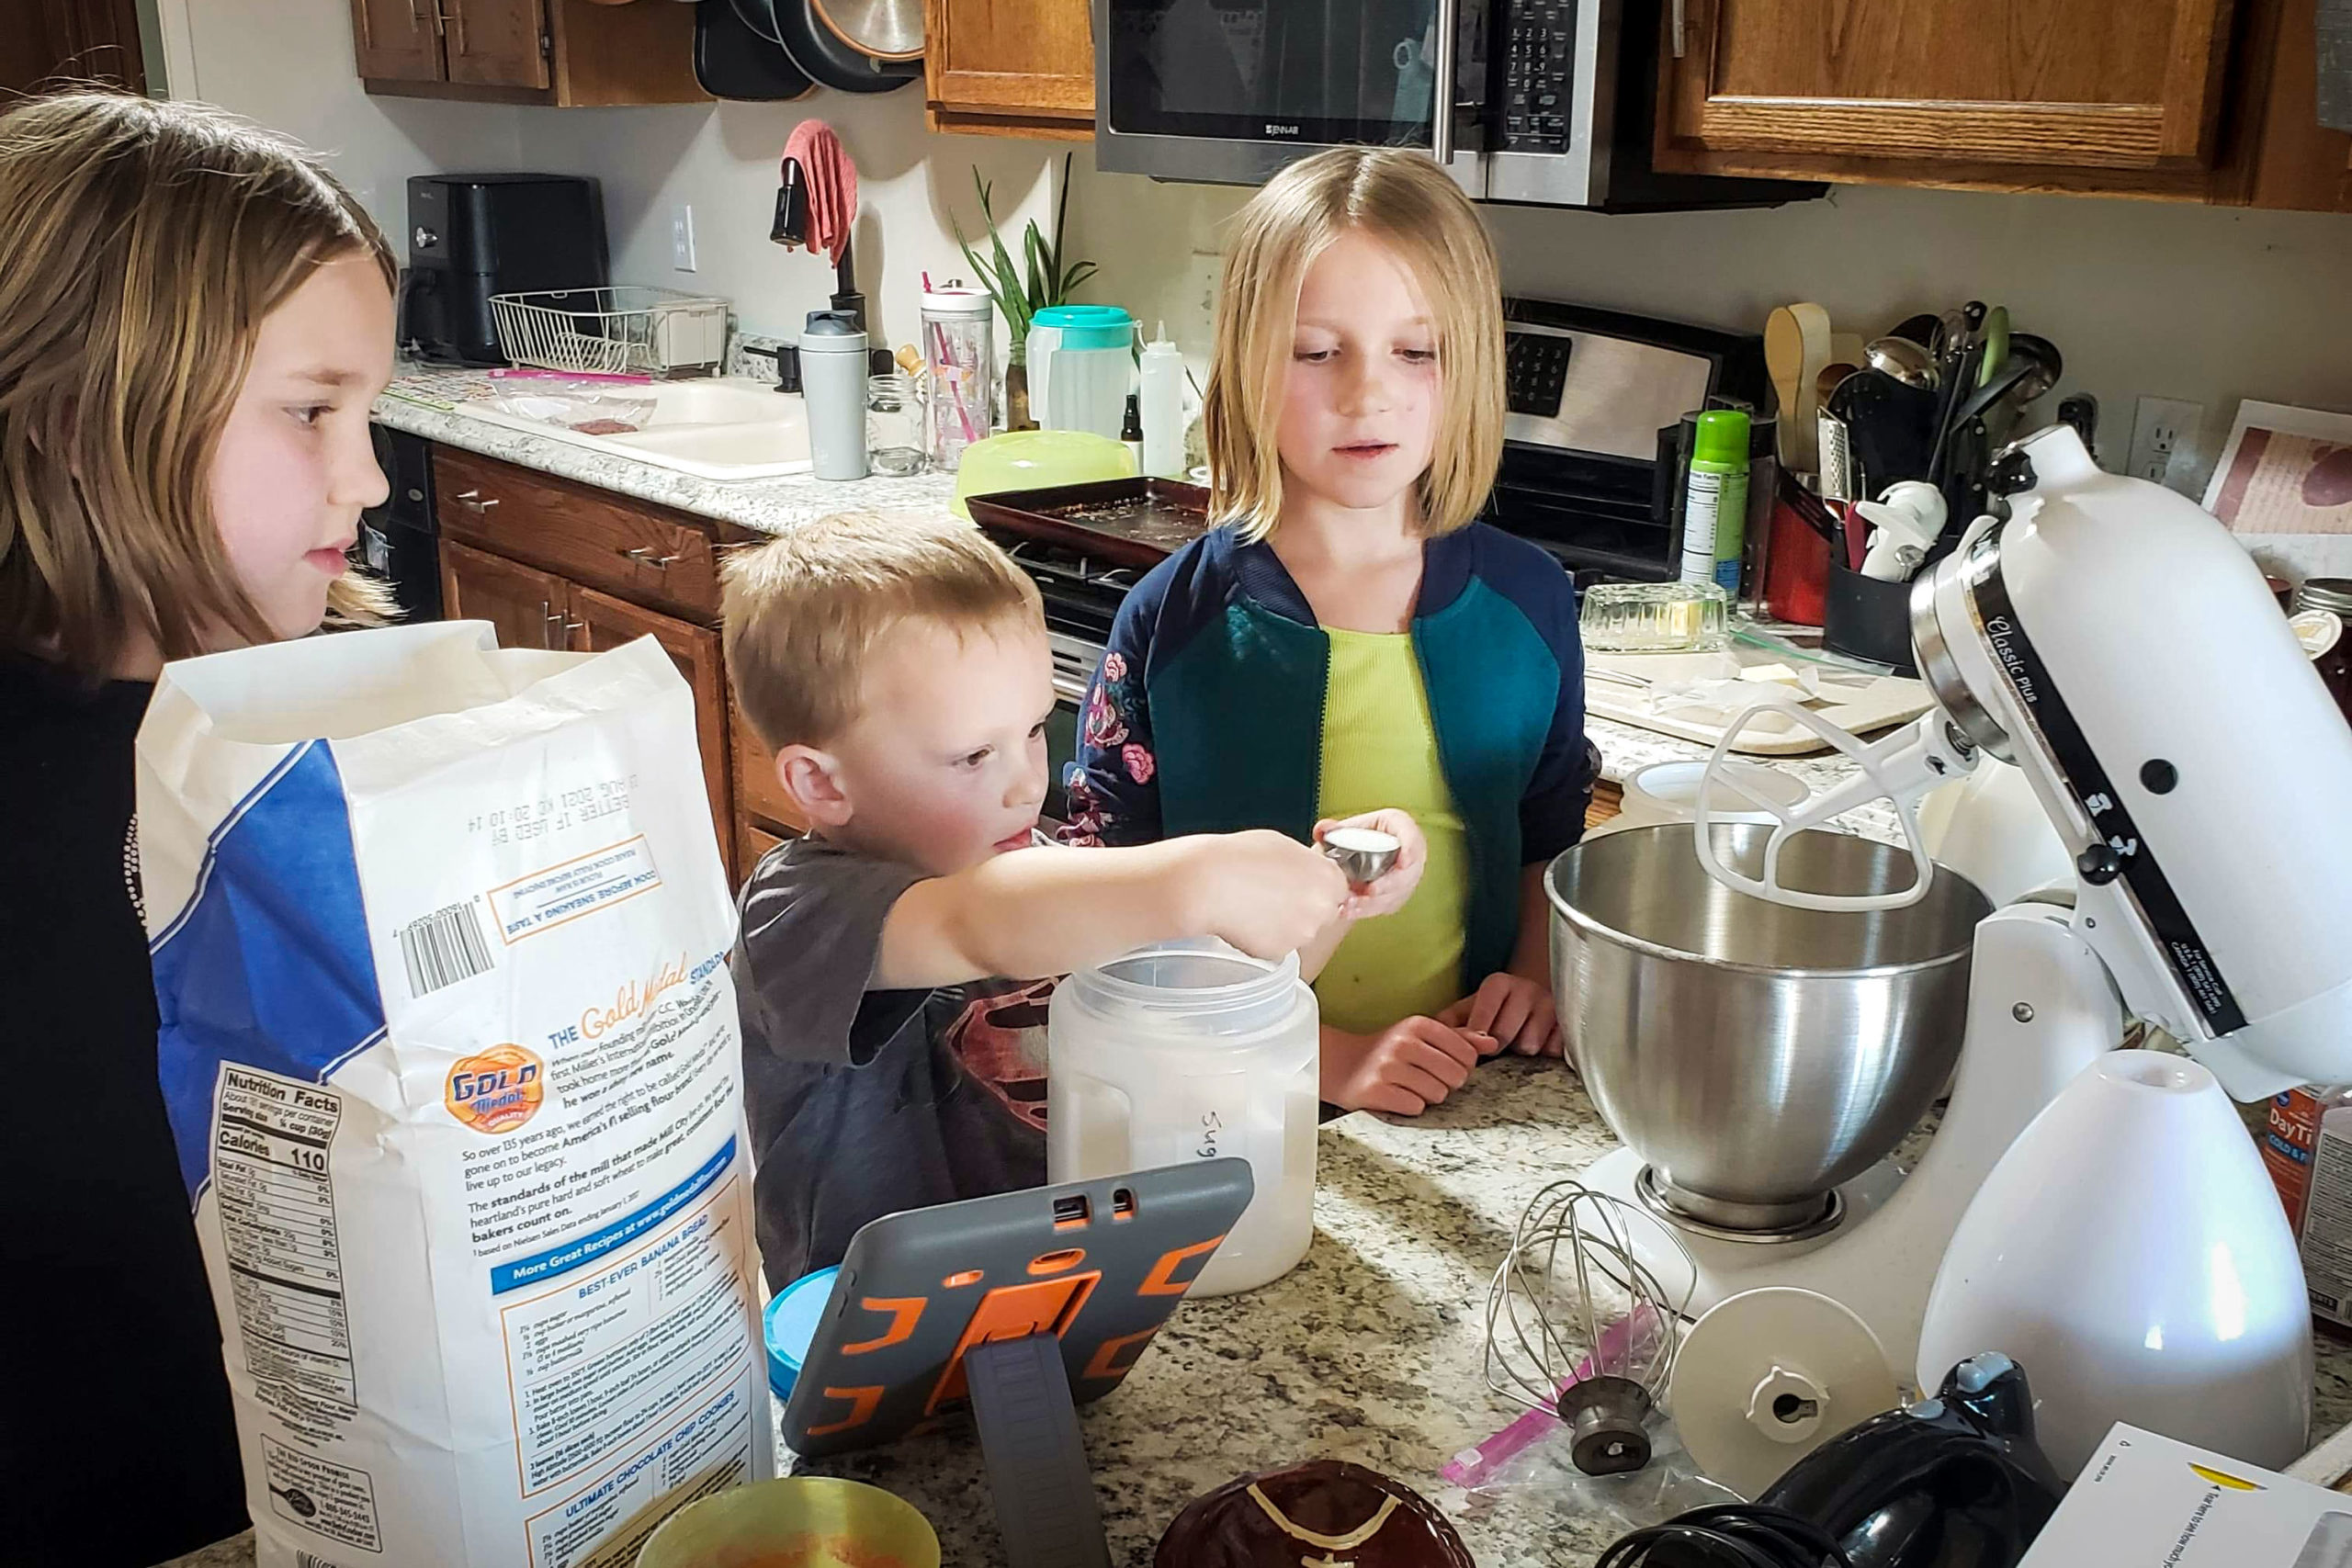 Since the pandemic began, Grand Junction stay-at-home mom Julie Baker has been inspired to bake more than she has in years, and has even borrowed a mixer from a friend to help the family make treats. She and her four kids recently made sour milk biscuits. Above, from left, are Katy, 9; Daniel, 3; and Lizzie, 8.